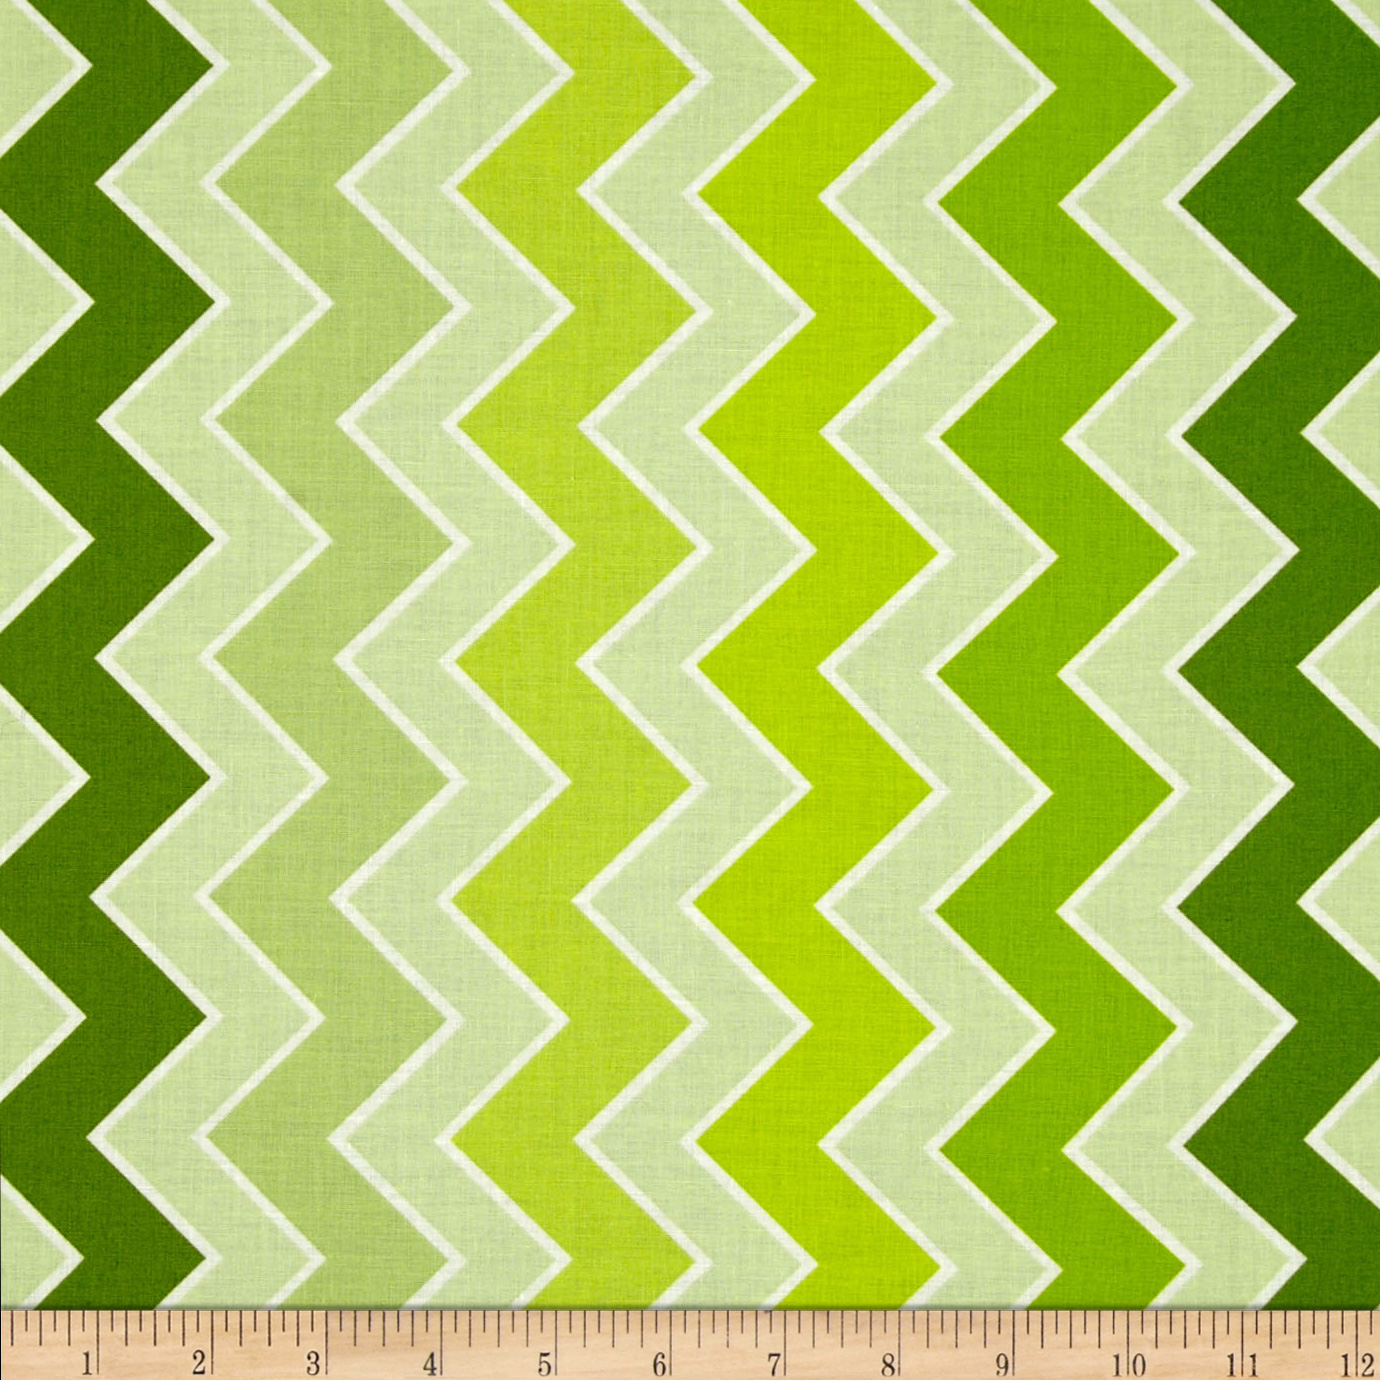 Riley Blake Medium Shaded Chevron Grasshopper